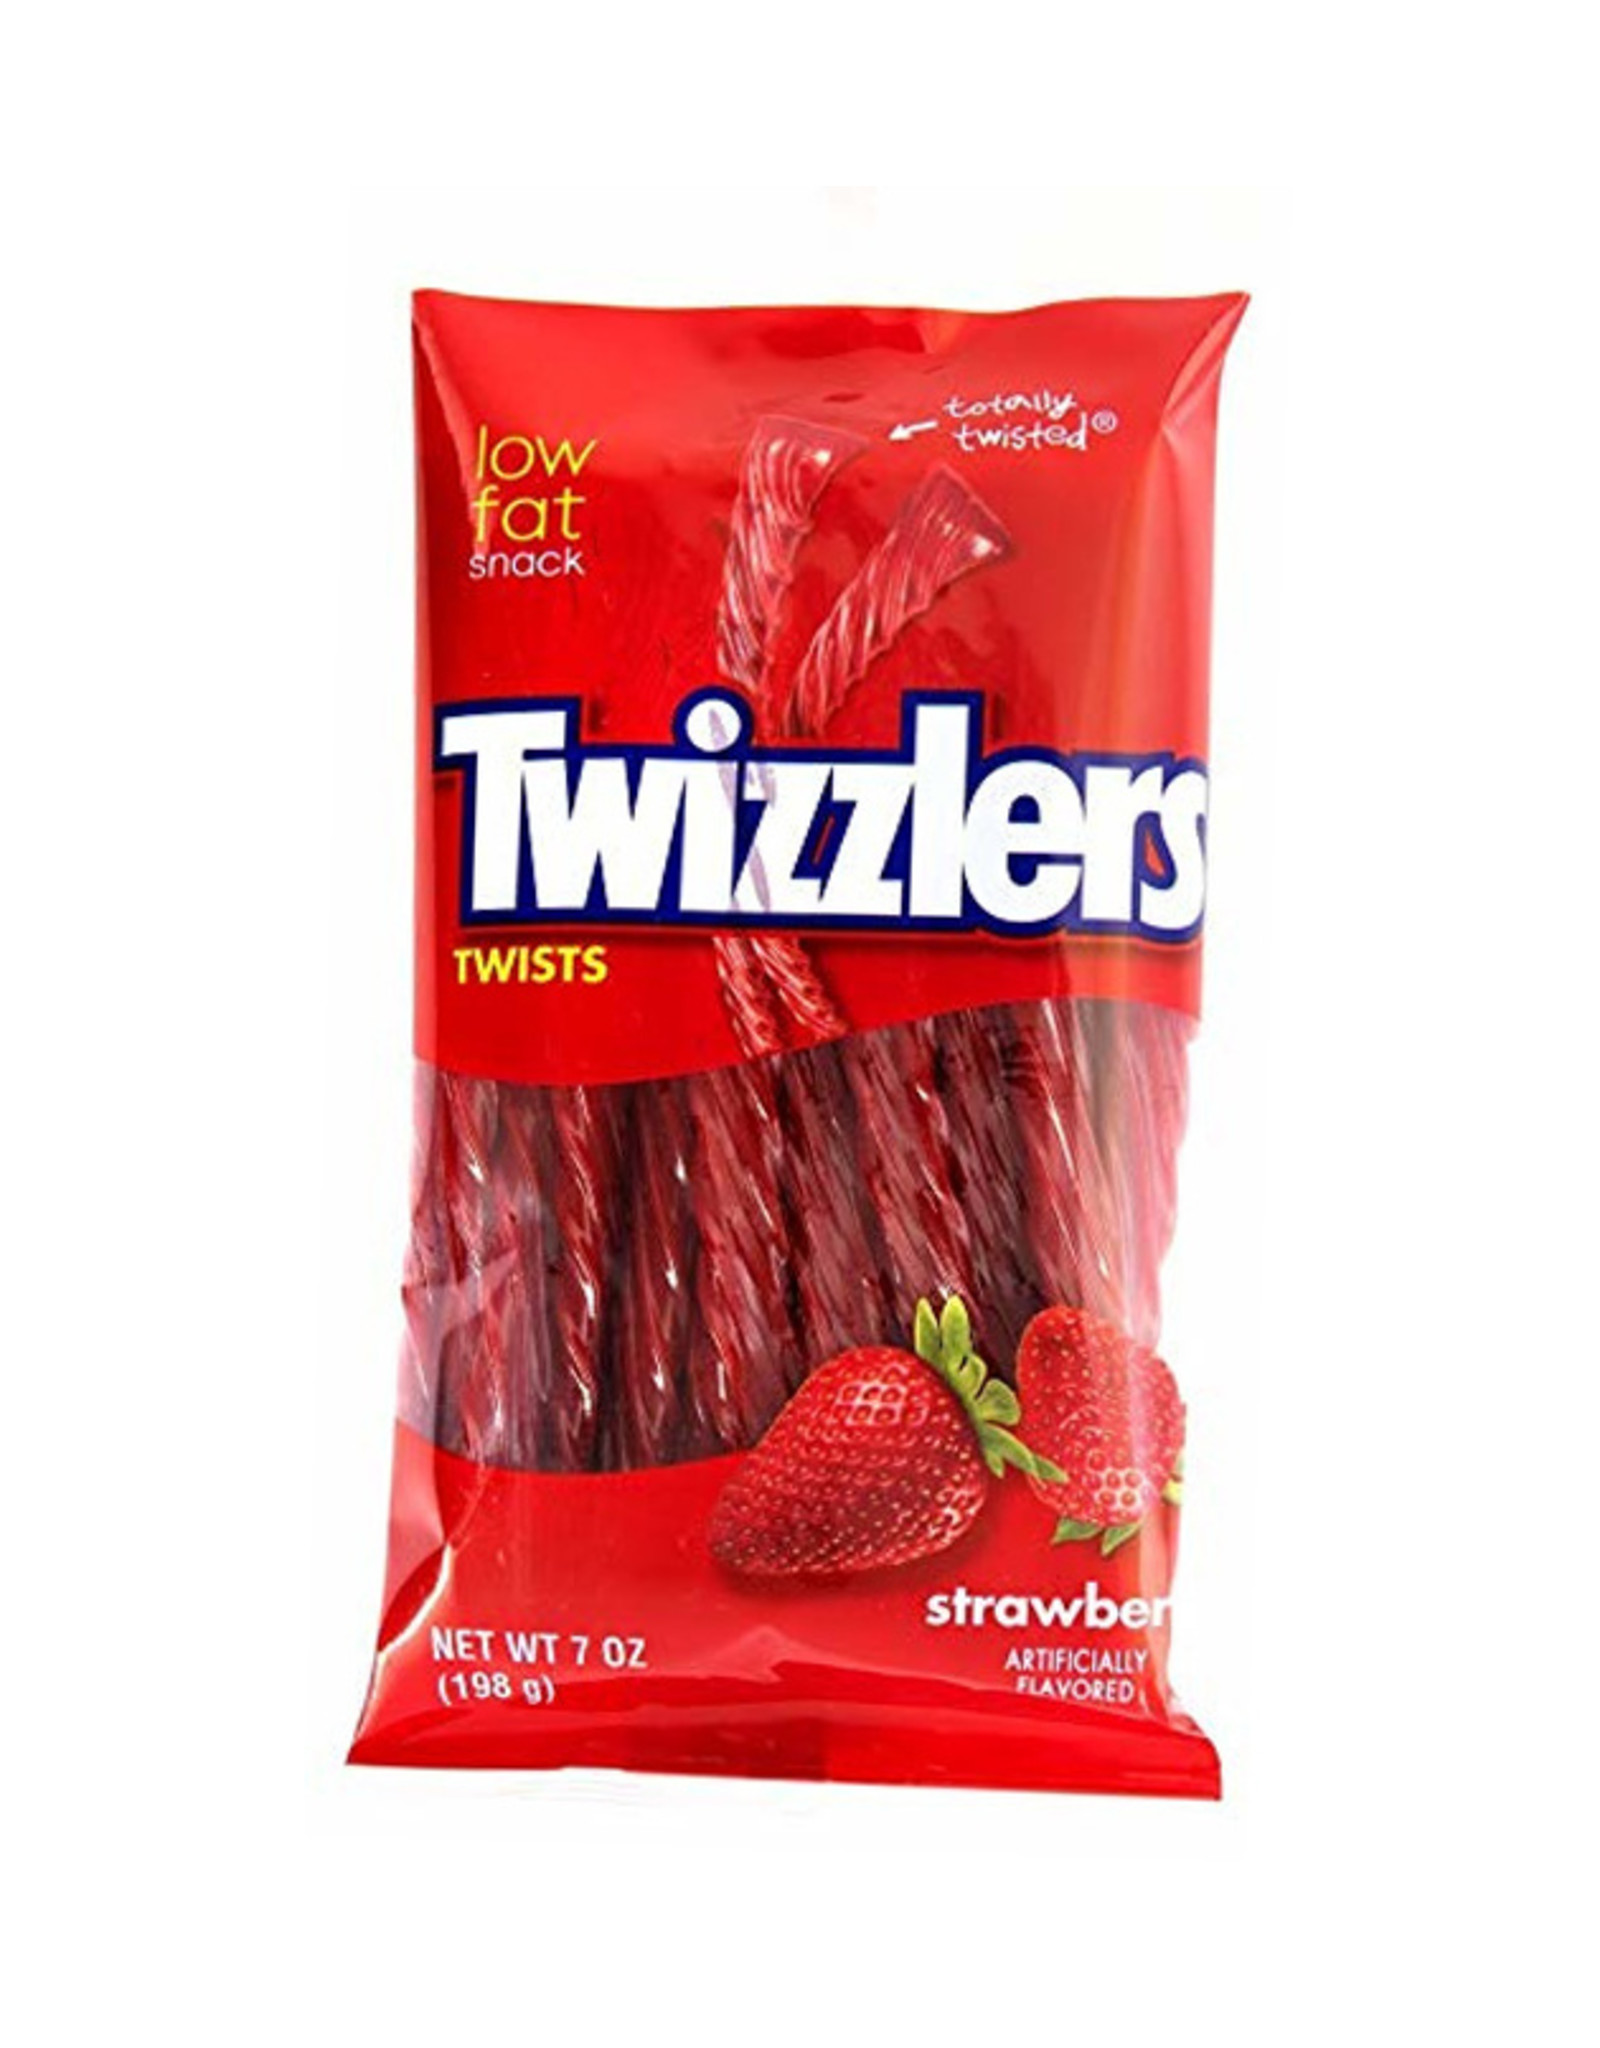 Twizzlers Twists Strawberry - 198g